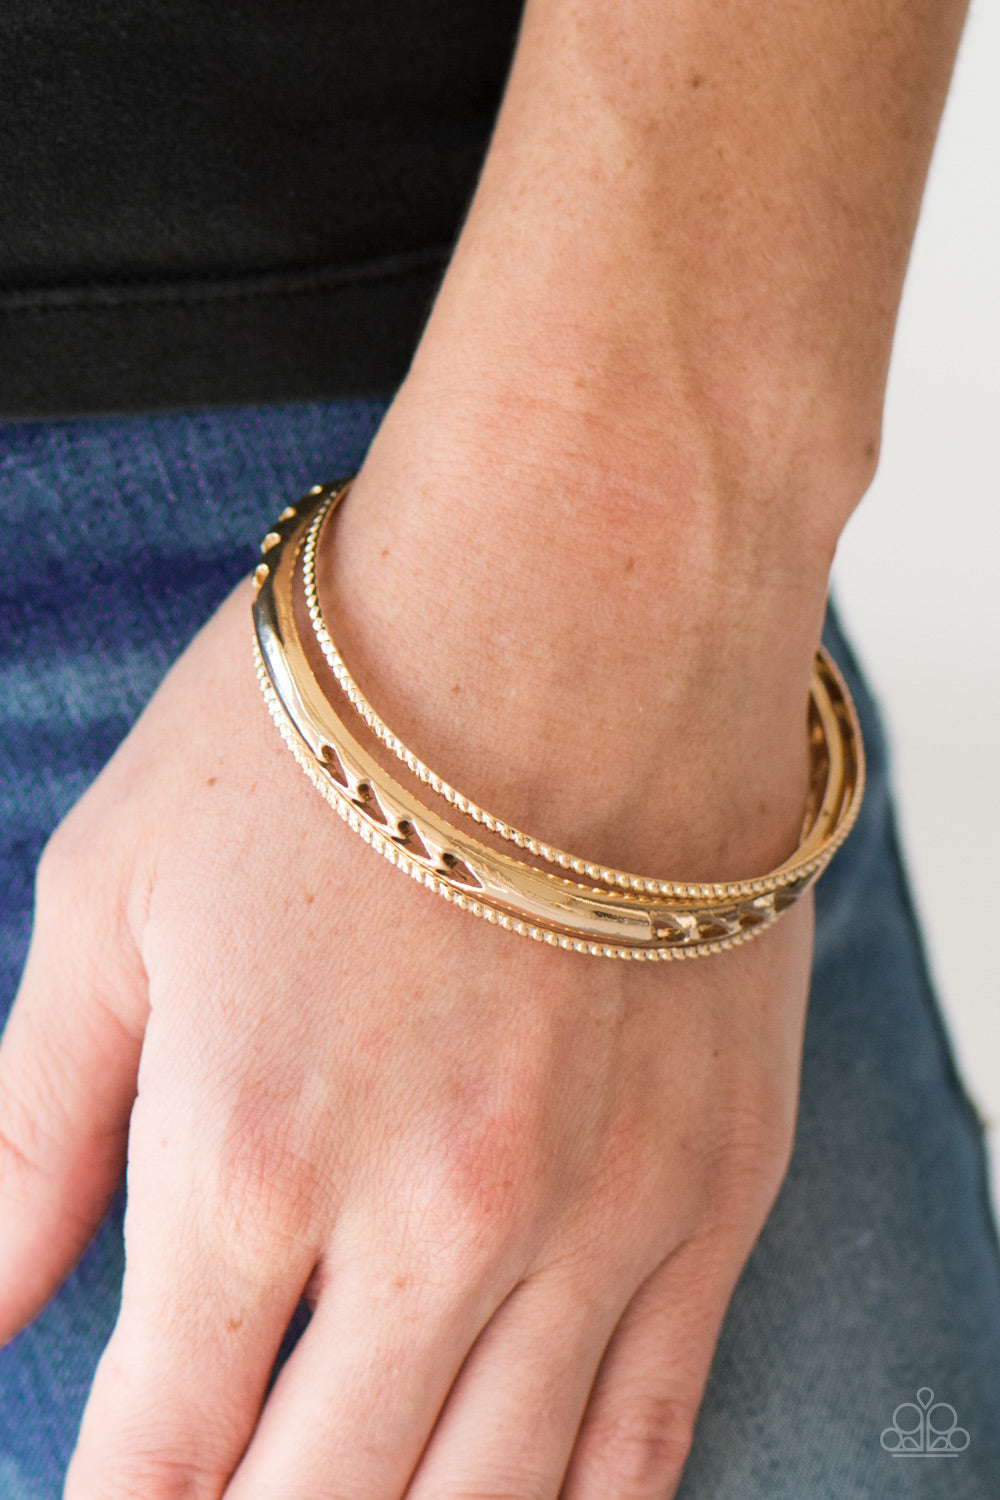 Amazon Warrior - Gold - Paparazzi bracelet